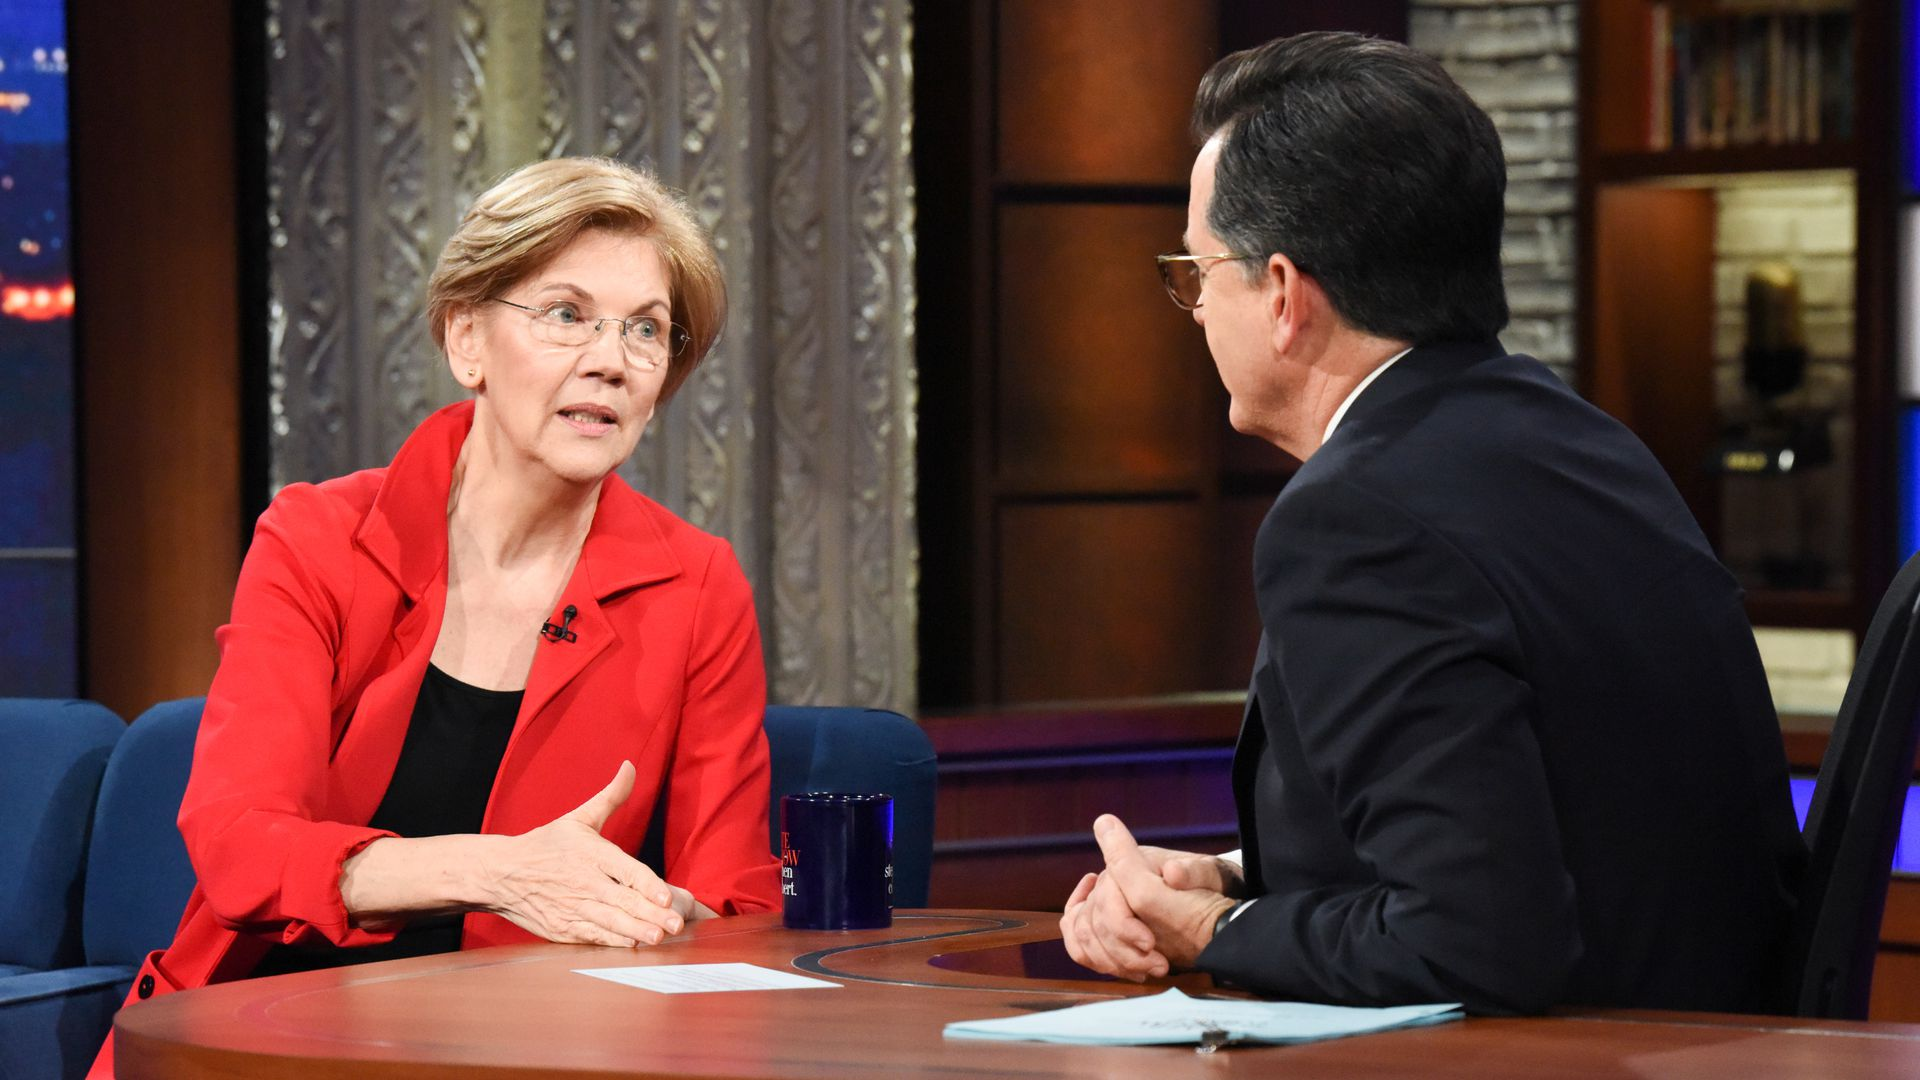 Elizabeth Warren told Stephen Colbert she doesn't think voters care about the Mueller report.